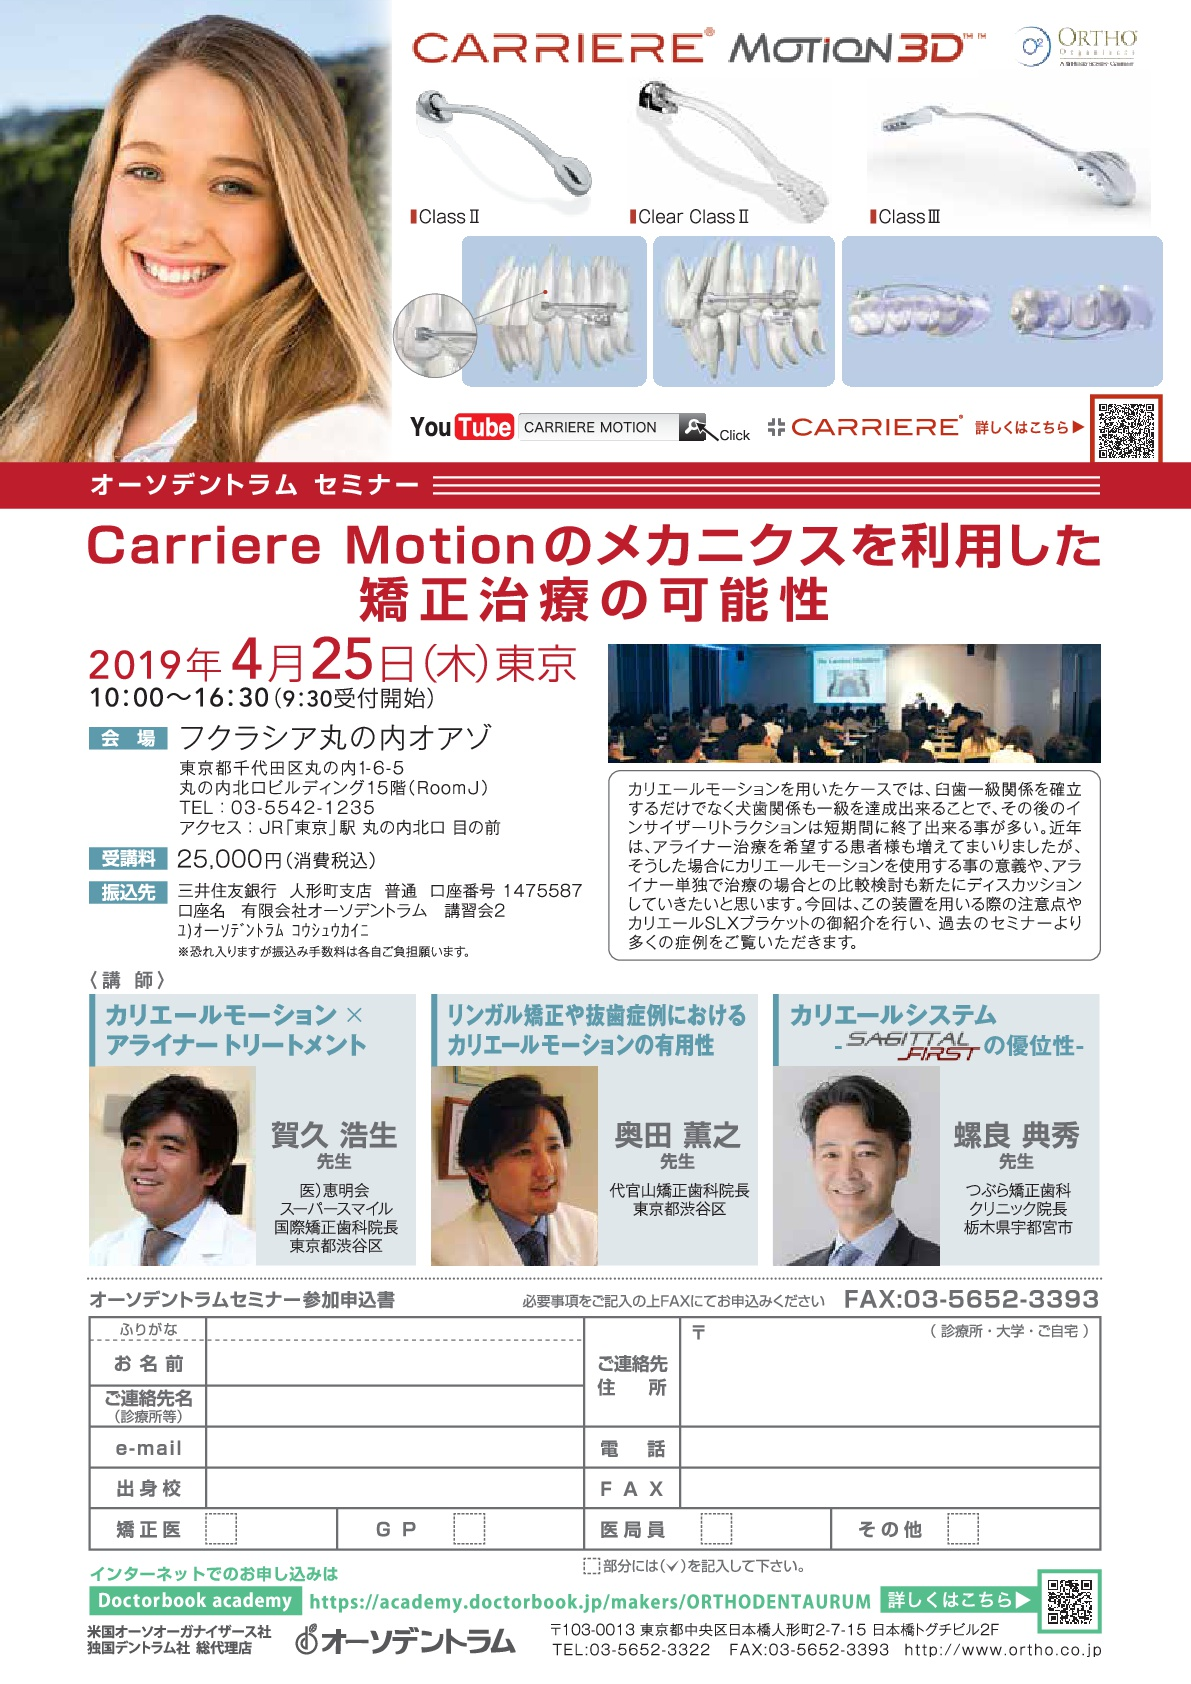 Carriere Motionのメカニクスを利用した矯正治療の可能性